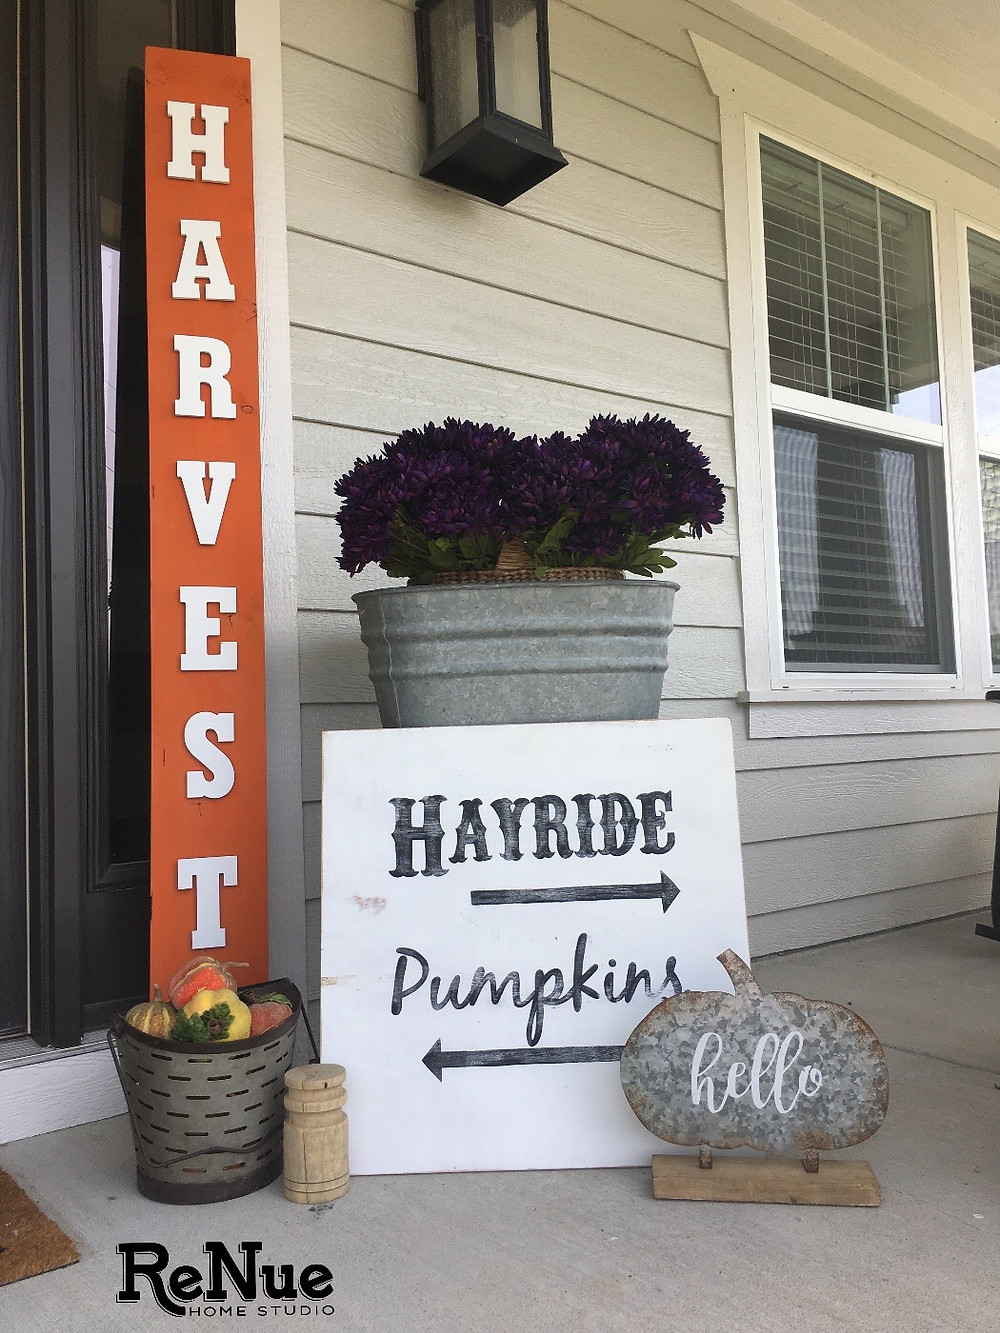 Hayride and Pumpkins Sign